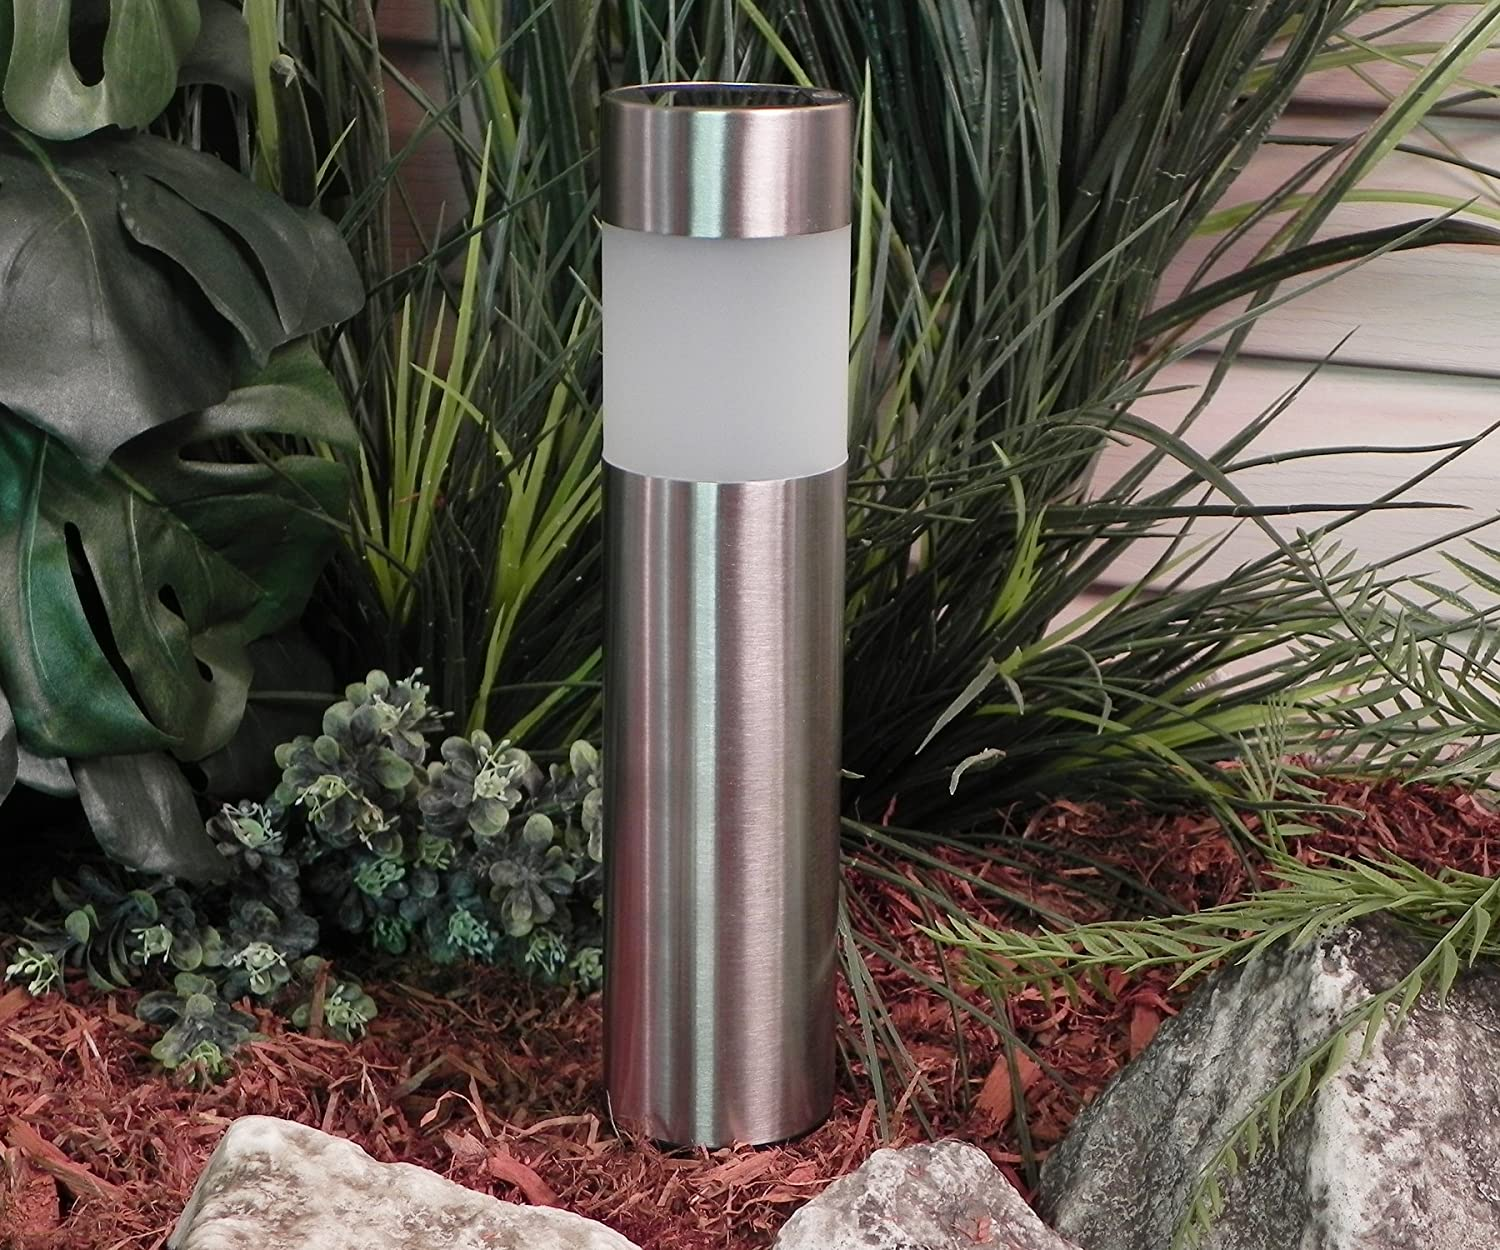 Attractive Solar Bollard Lighting Part - 10: Amazon.com: Paradise GL23158SS4 Stainless Steel Solar Bollard Light With  White LED, 4-Pack, Stainless Steel: Home Improvement